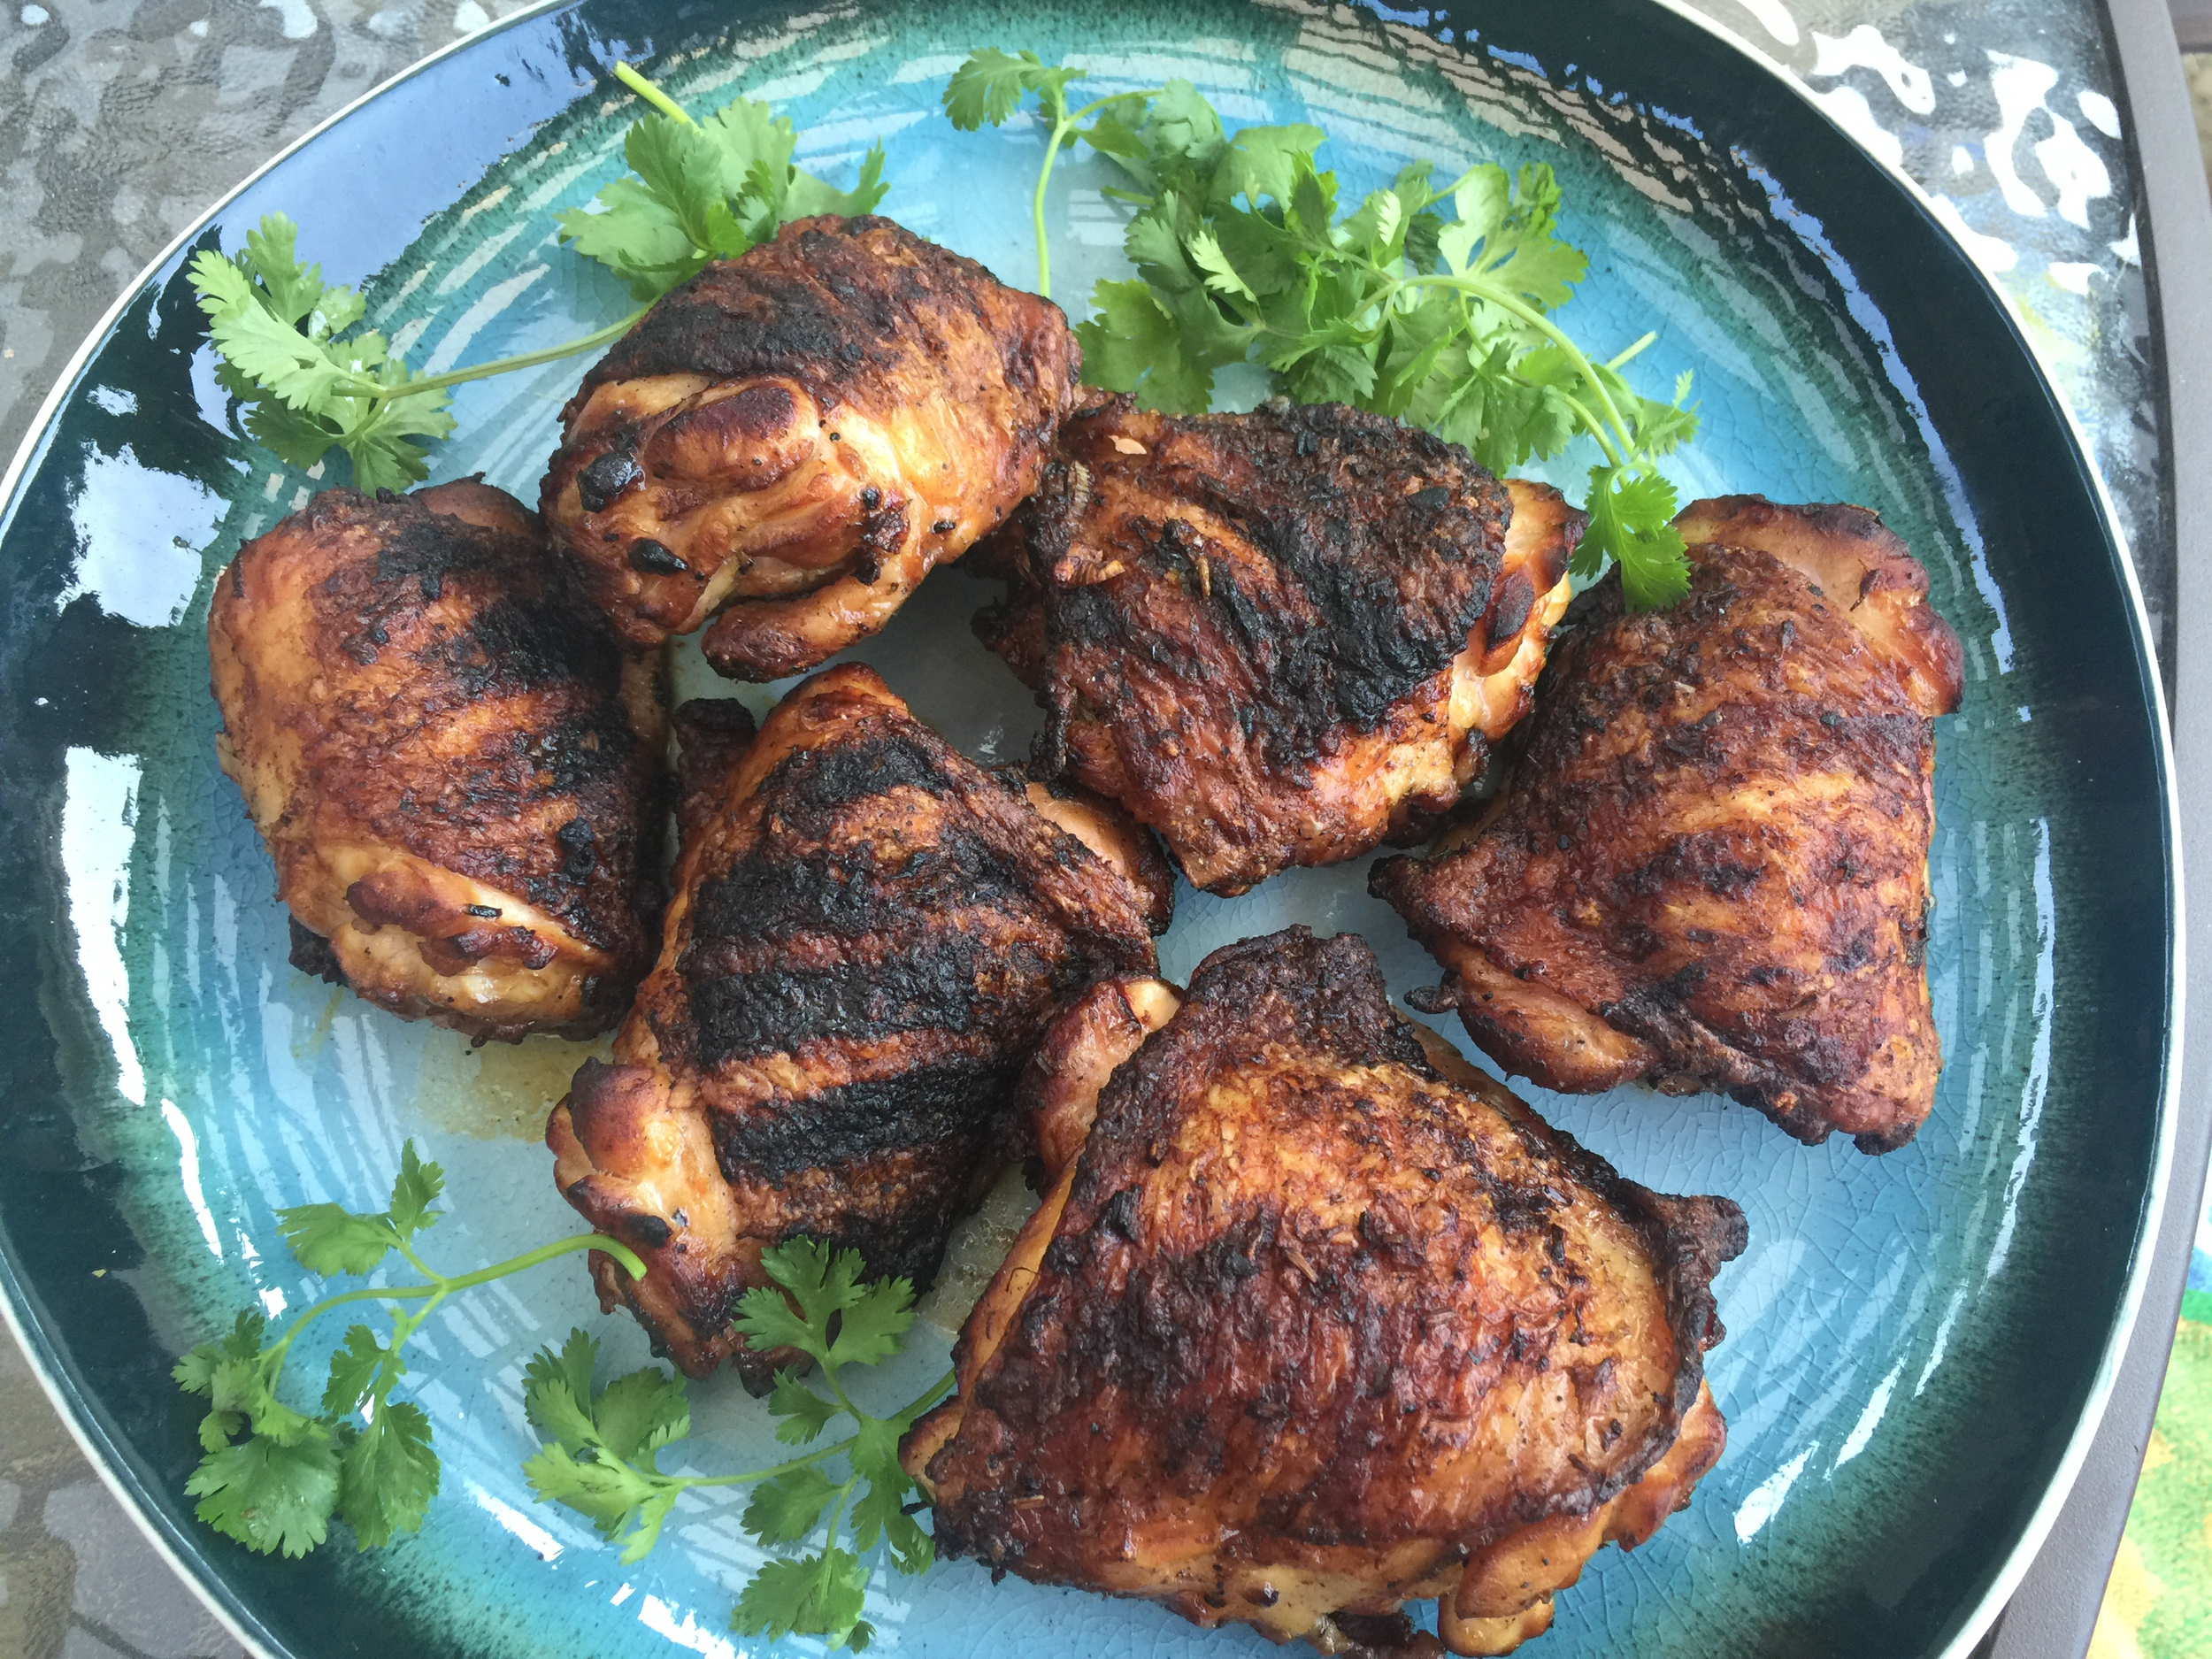 Crispy-skinned Asian grilled chicken thighs